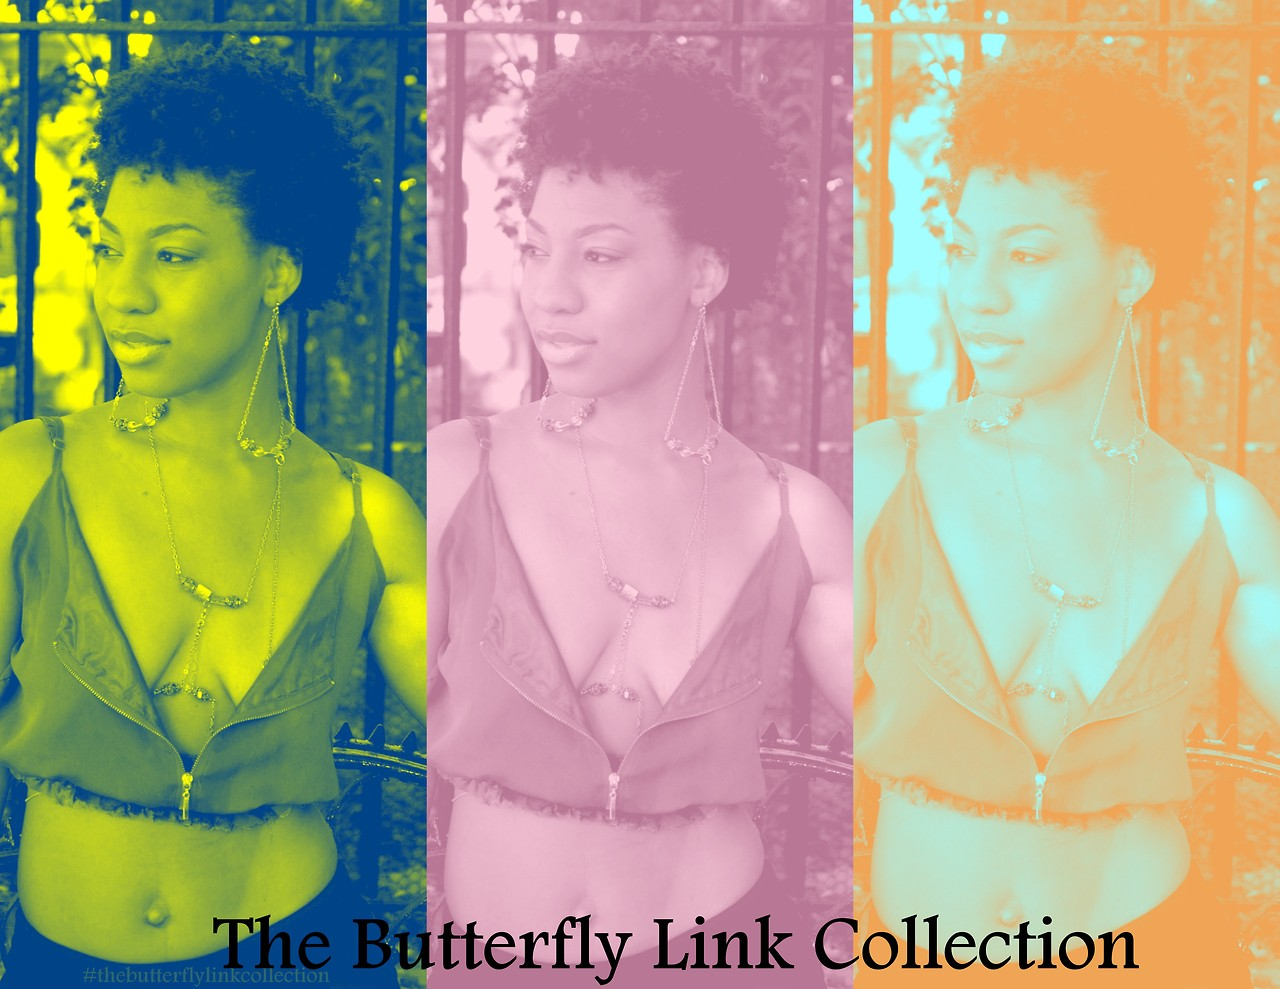 Pre-order the collection at  www.charmedfeathers.com       Photos by Delilah Williams.